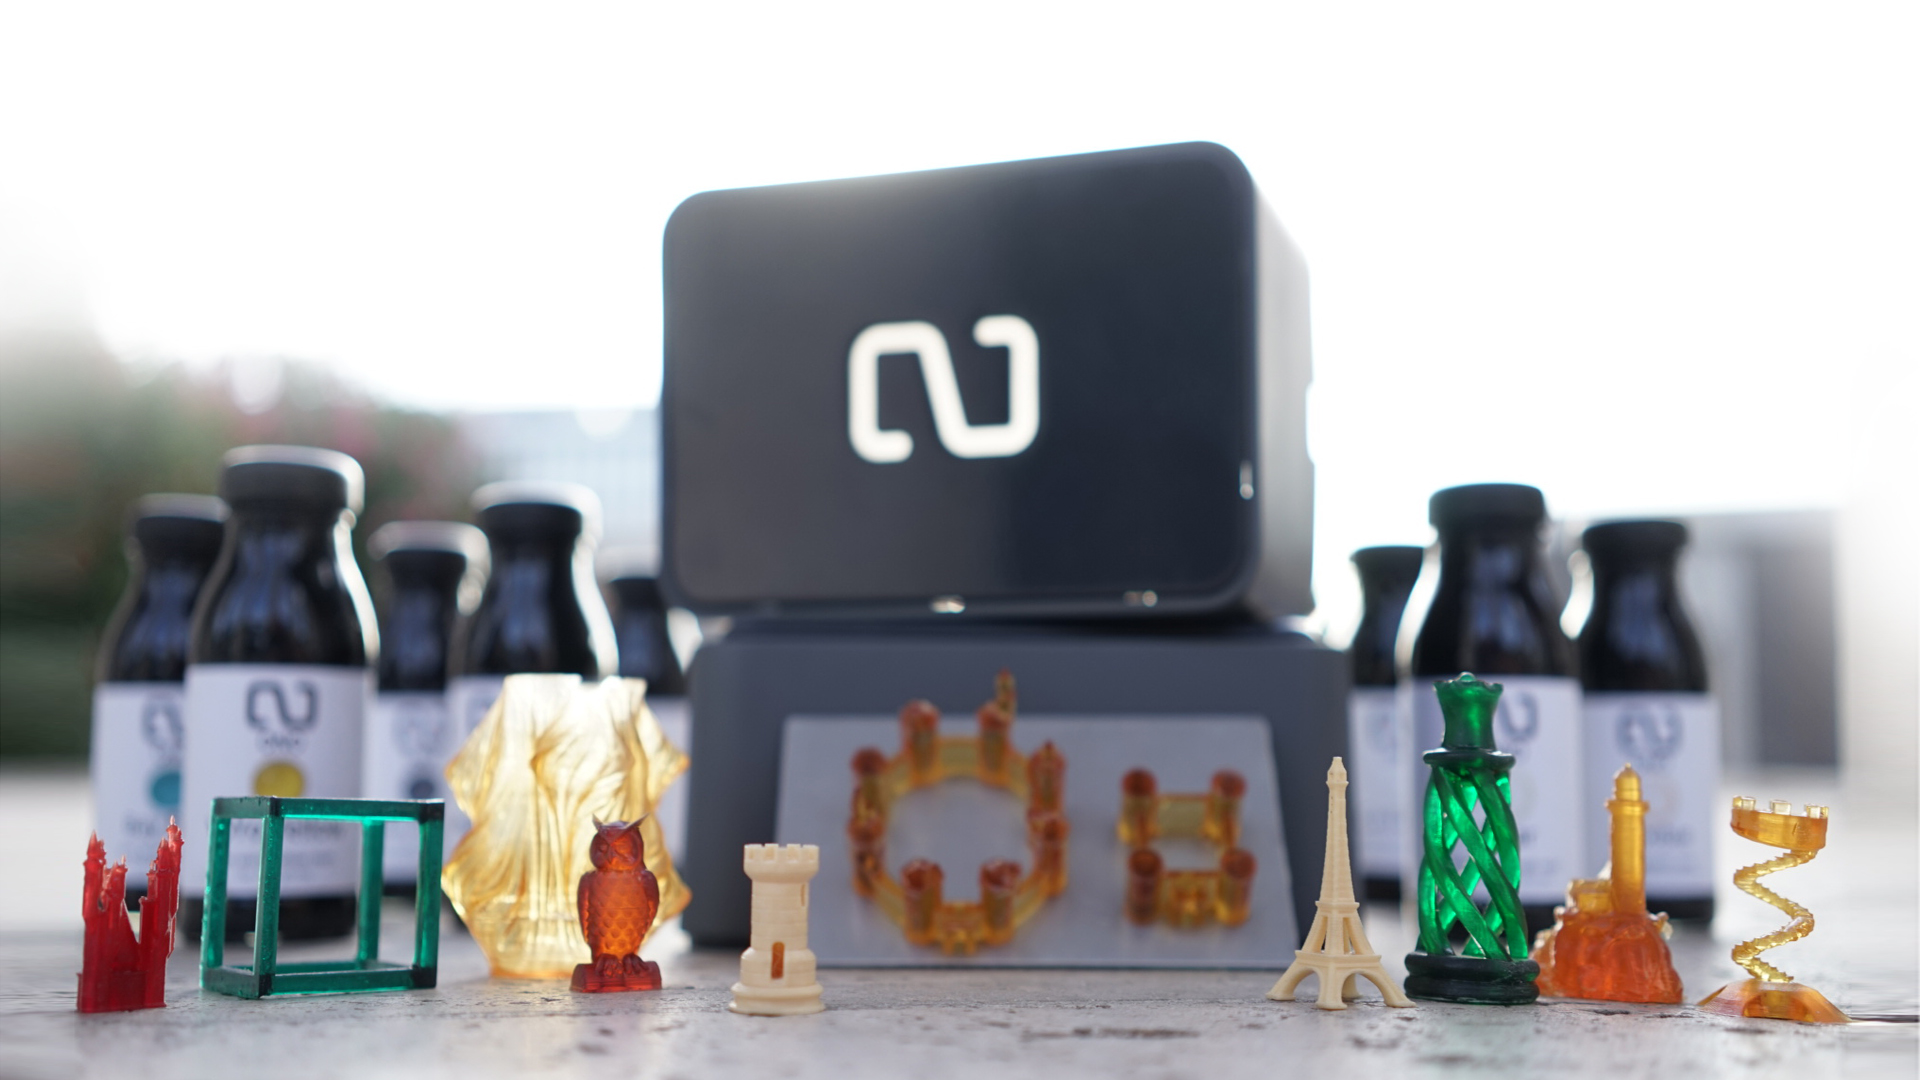 OLO 3D Will Transform Your Smartphone into a 3D Printer - Update